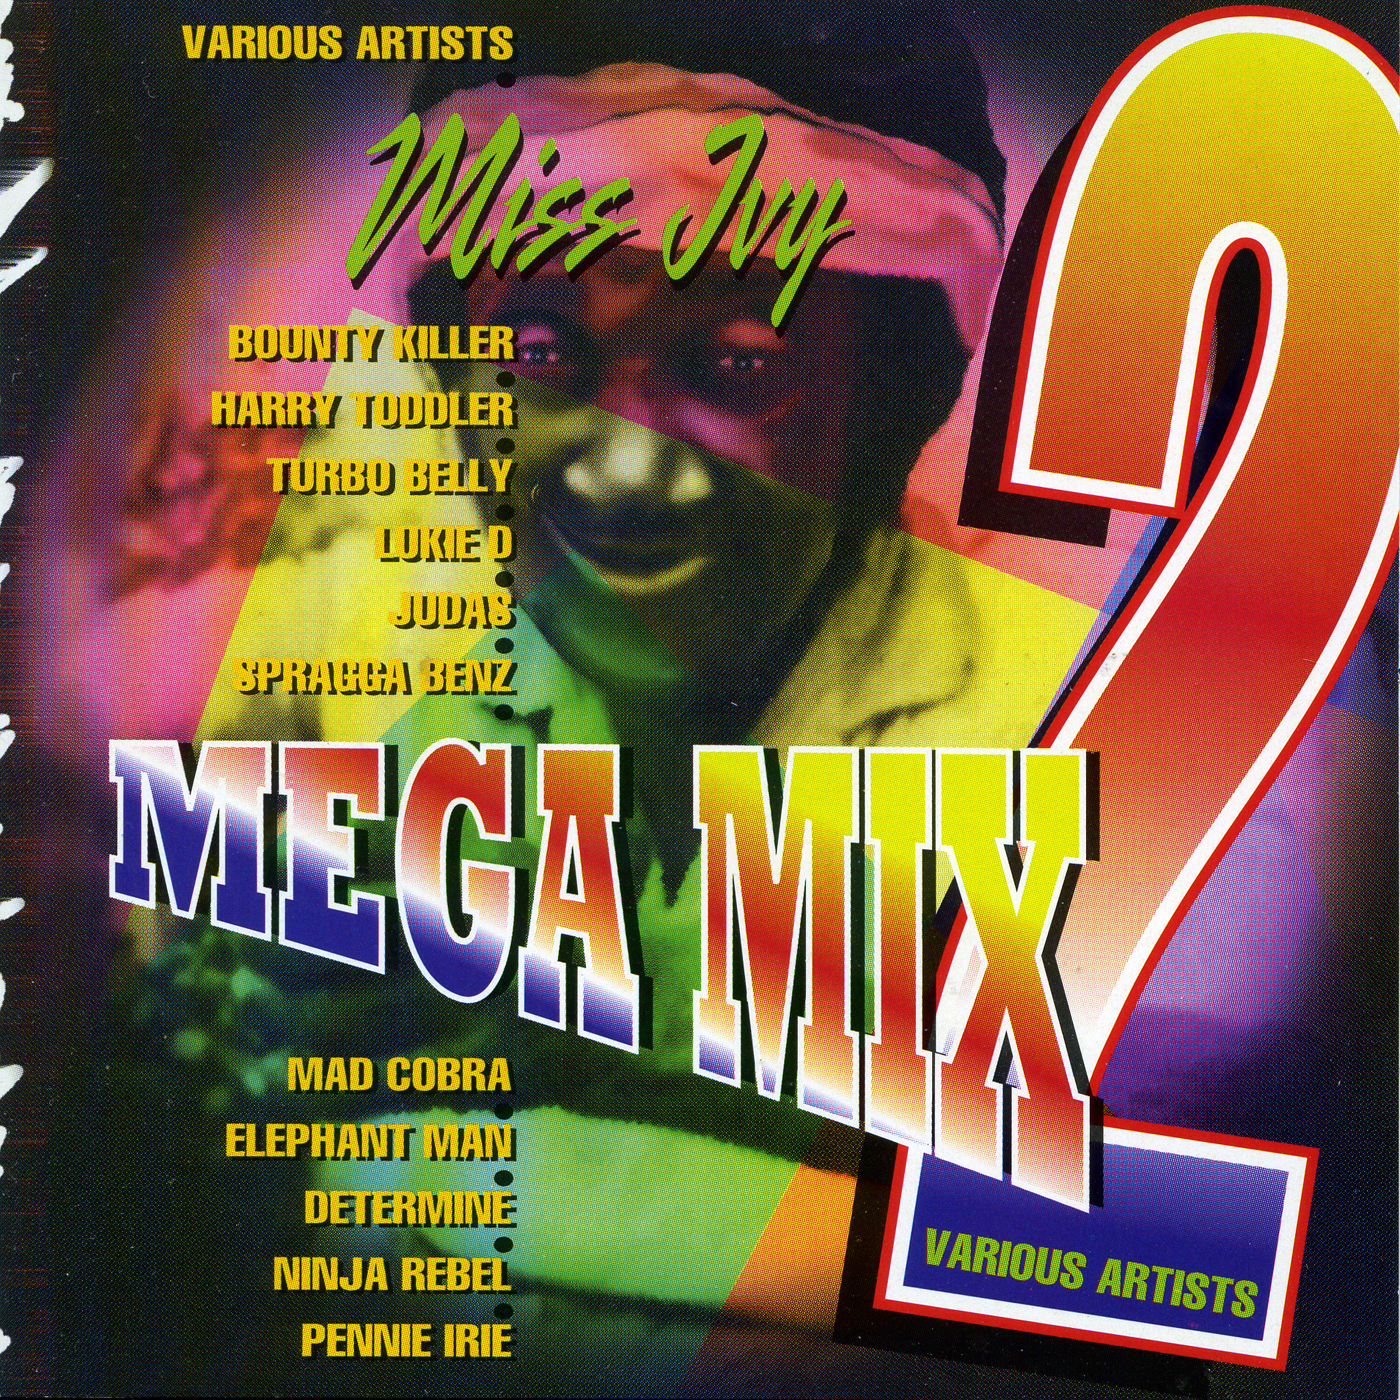 Miss Ivy Mega Mix Vol. 2